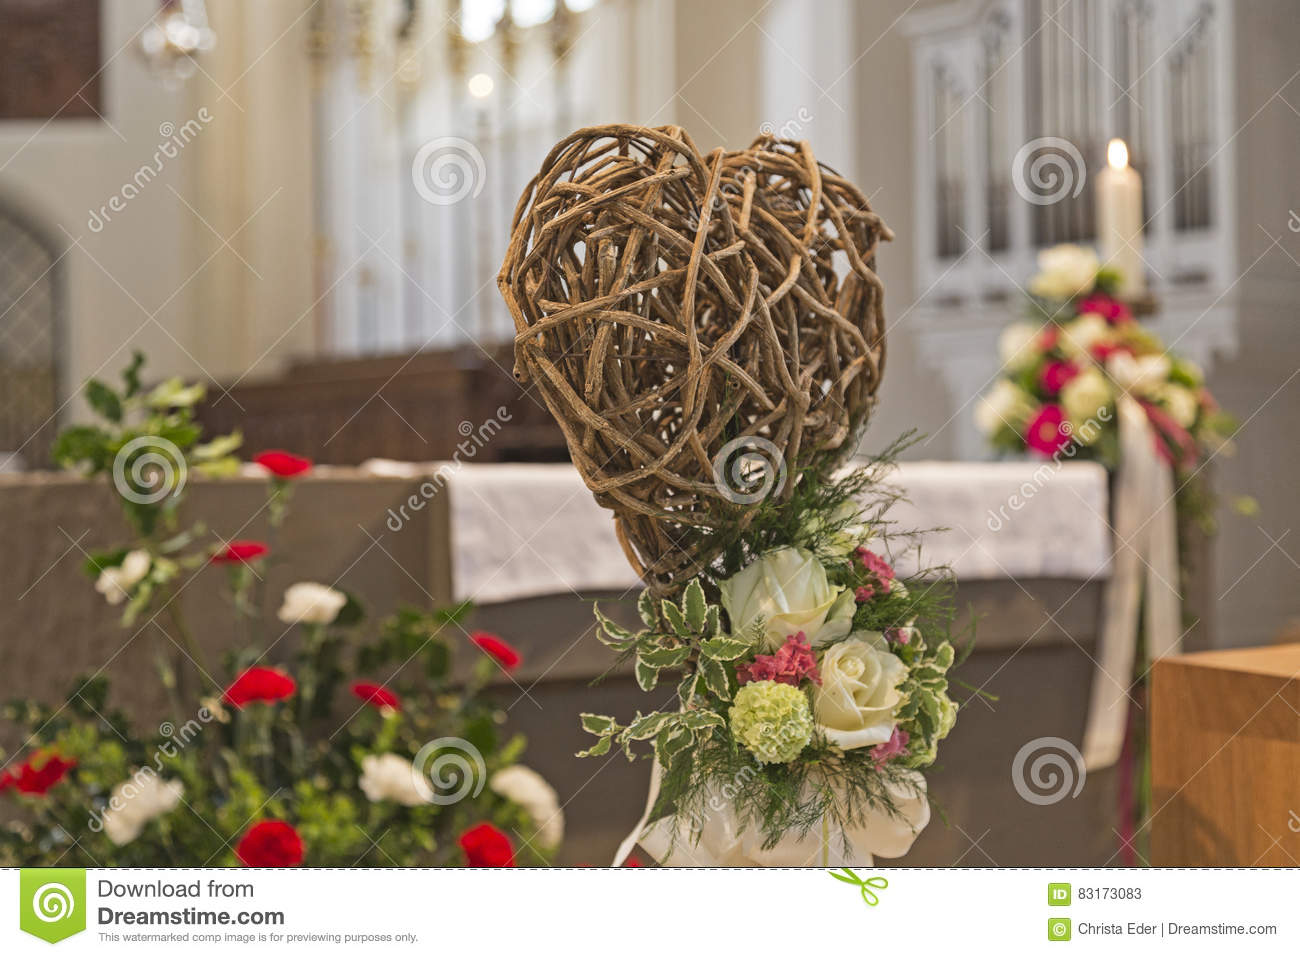 Loral flower decorations at a church wedding & Wedding Decoration In The Church Stock Image - Image of heart bound ...